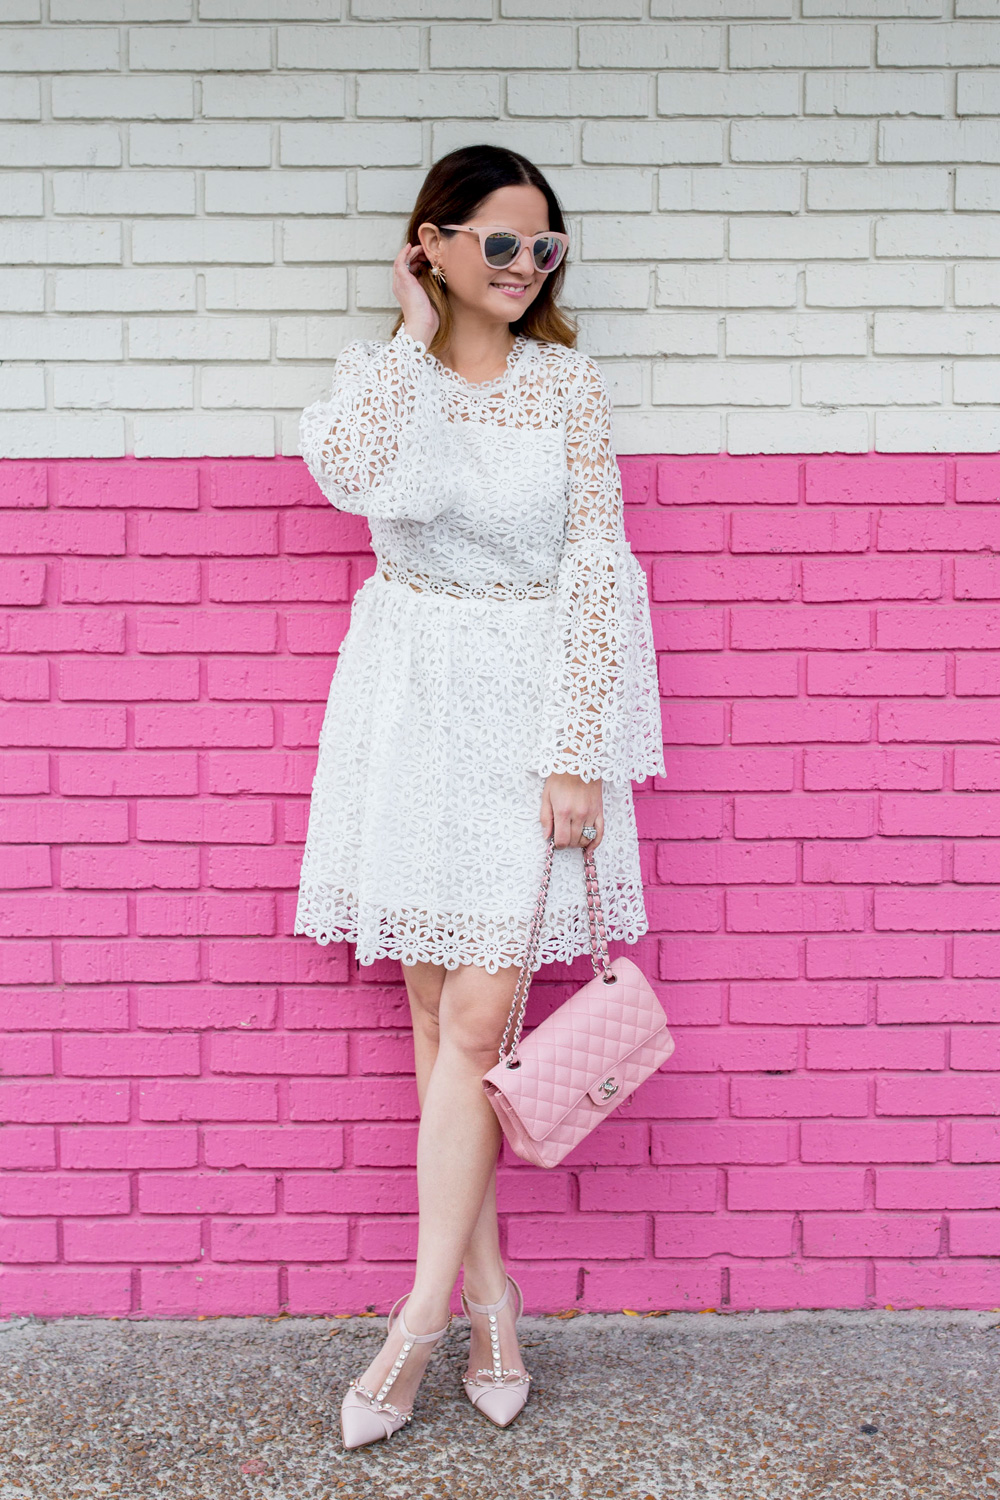 Jennifer Lake Style Charade wearing a white lace bell sleeve dress, Kate Spade Lydia heels, and pink Chanel quilted flap bag pink wall Chicago